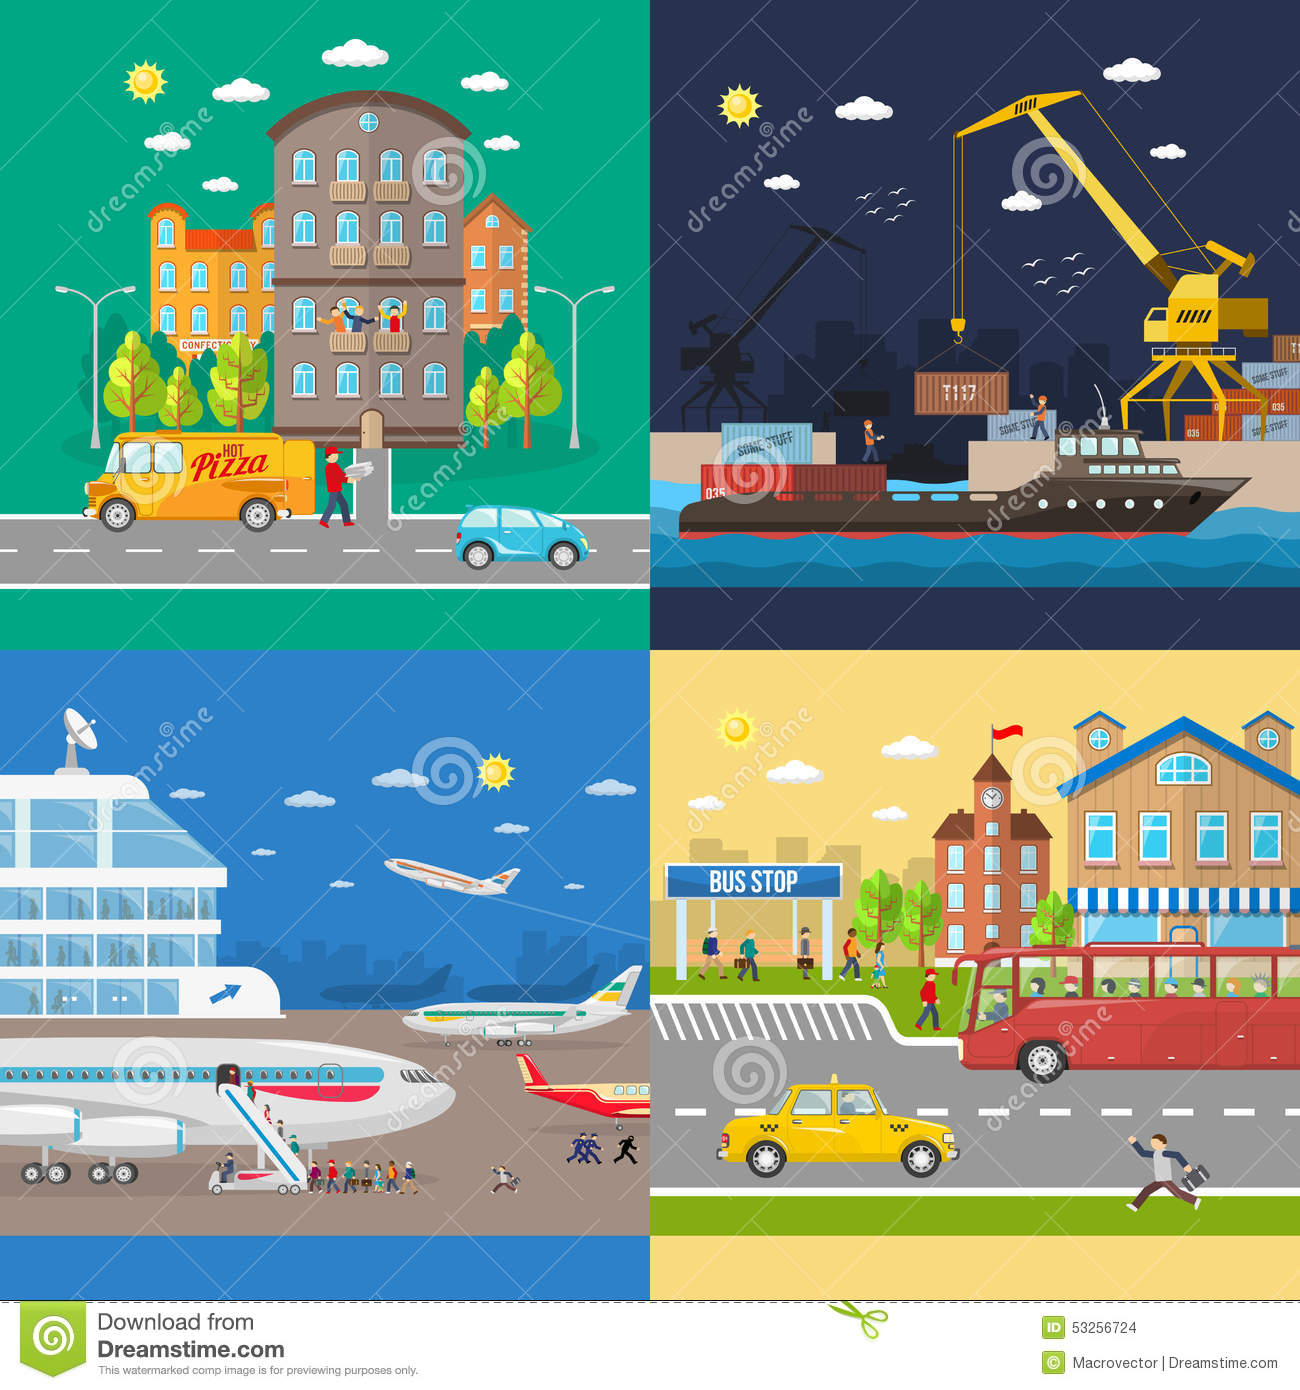 Transportation of passengers and goods delivery